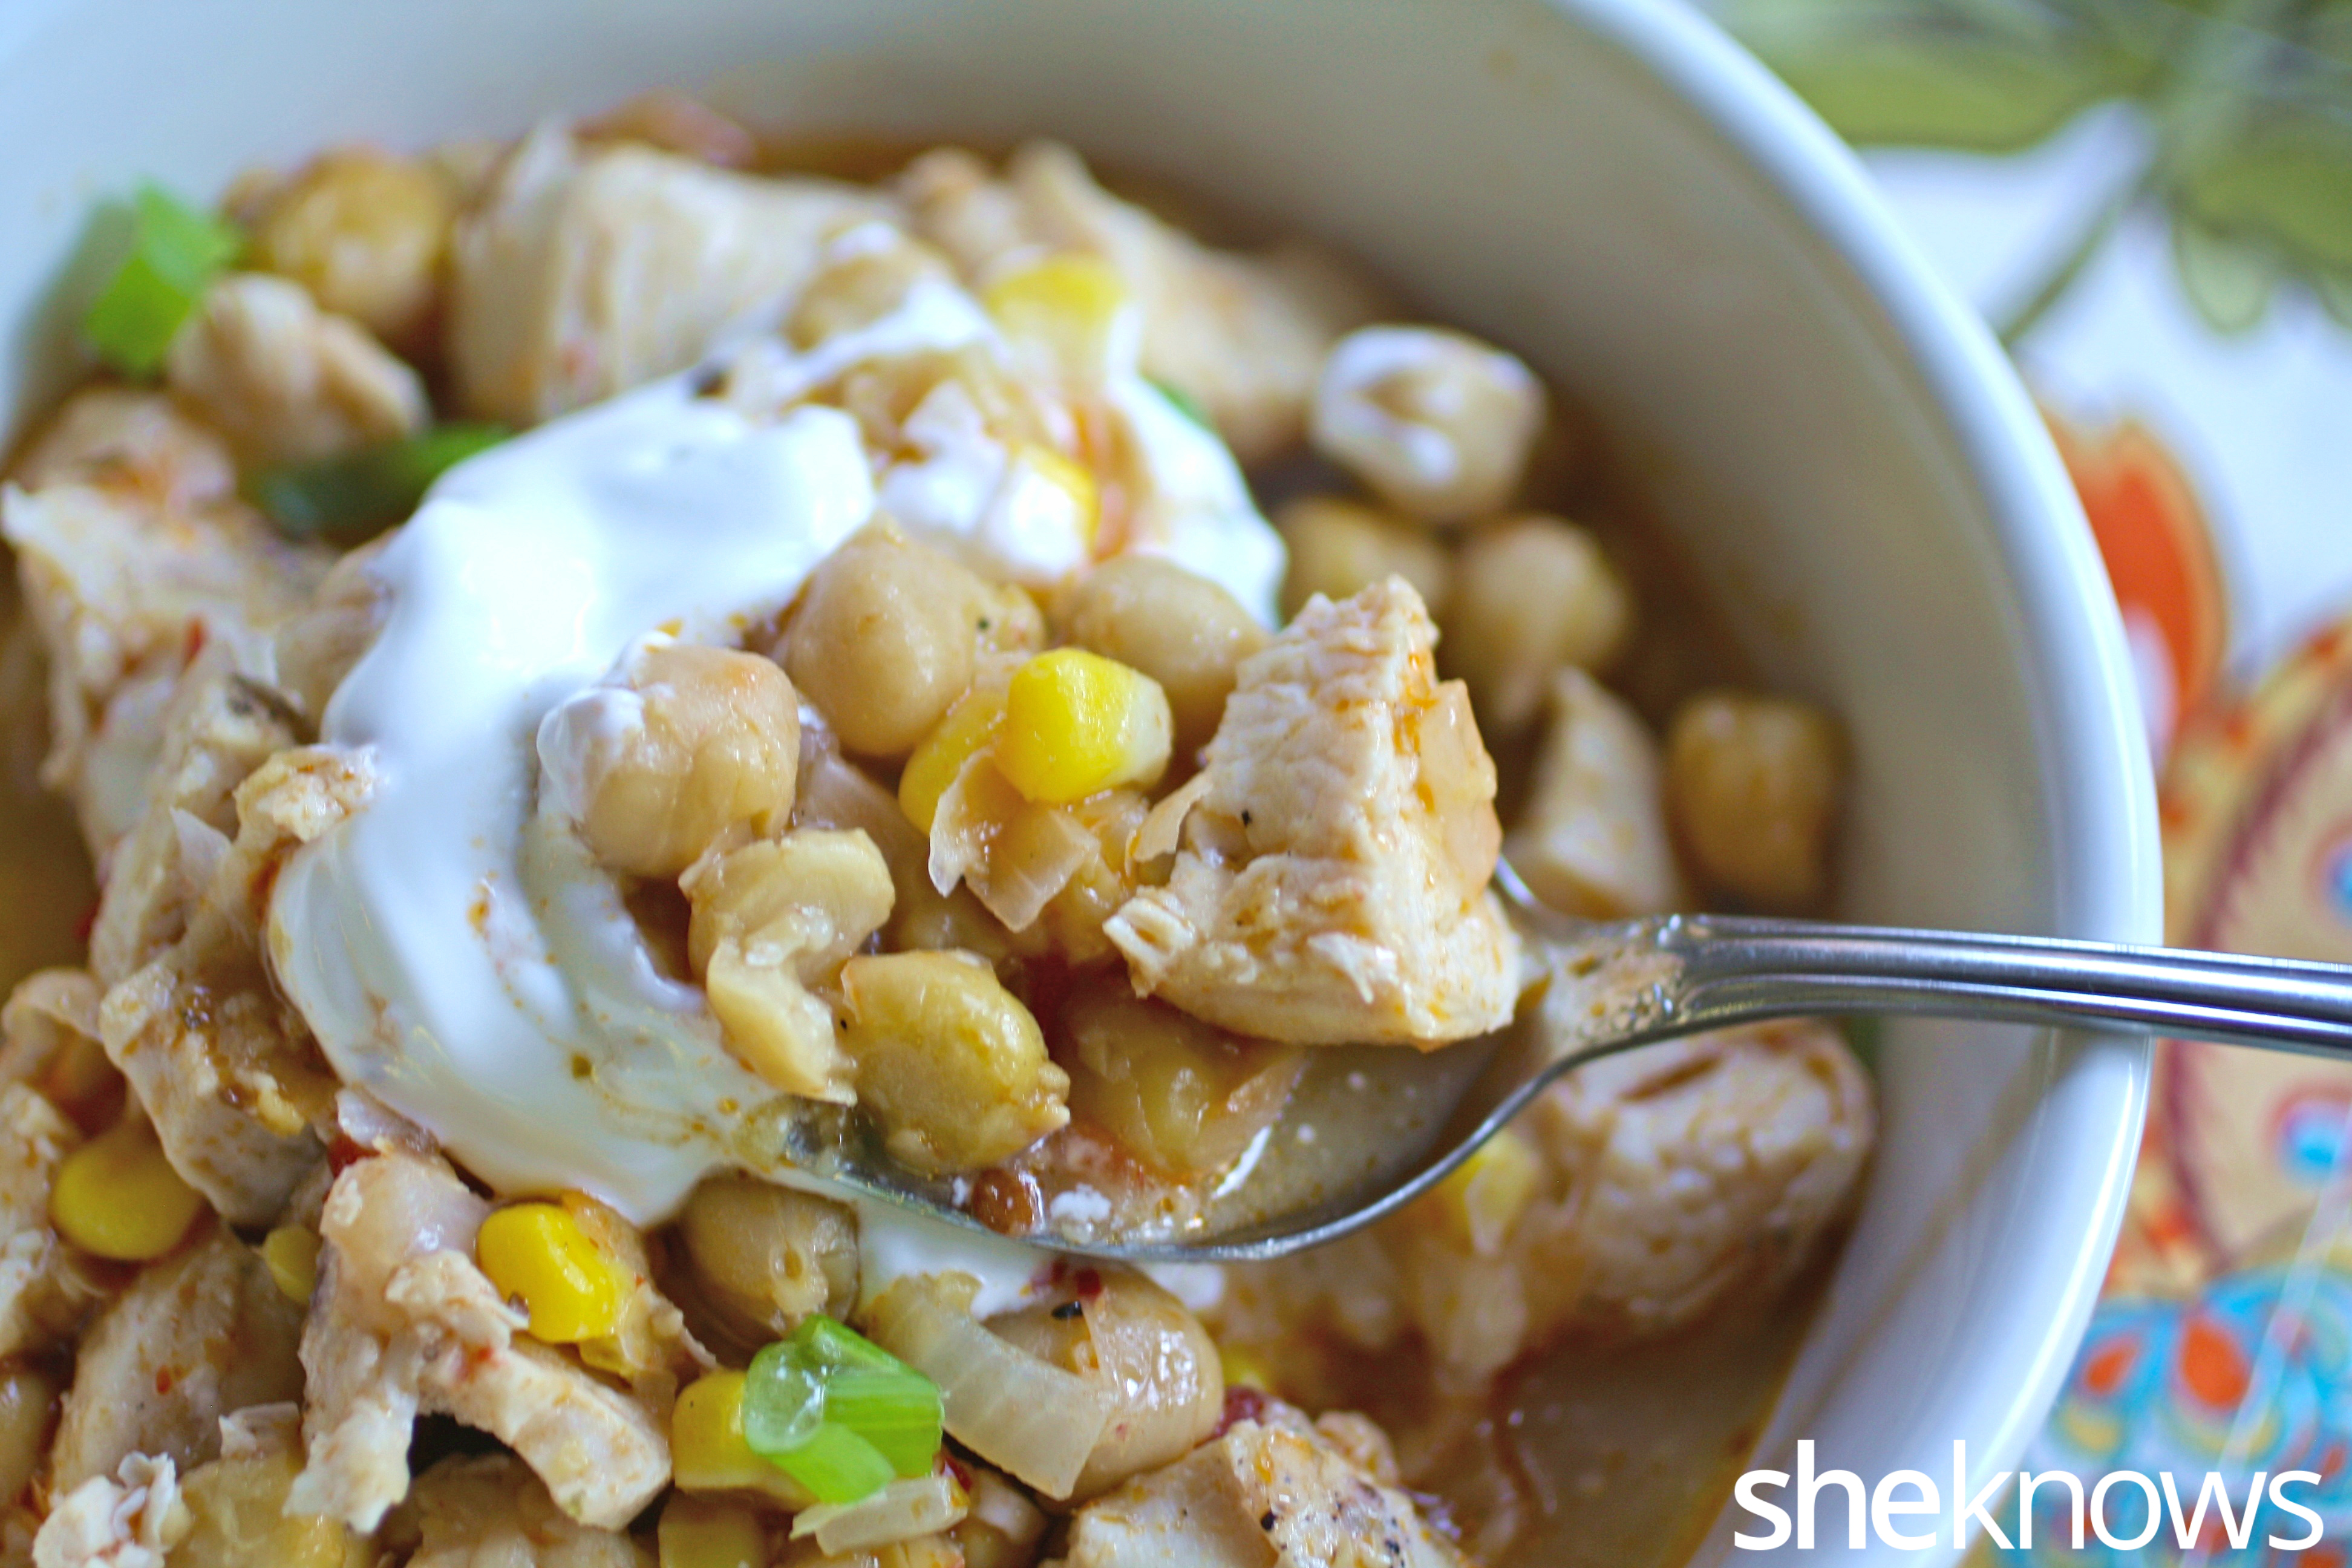 Grab a spoon to enjoy every bit of this hearty chickpea and chicken chili!